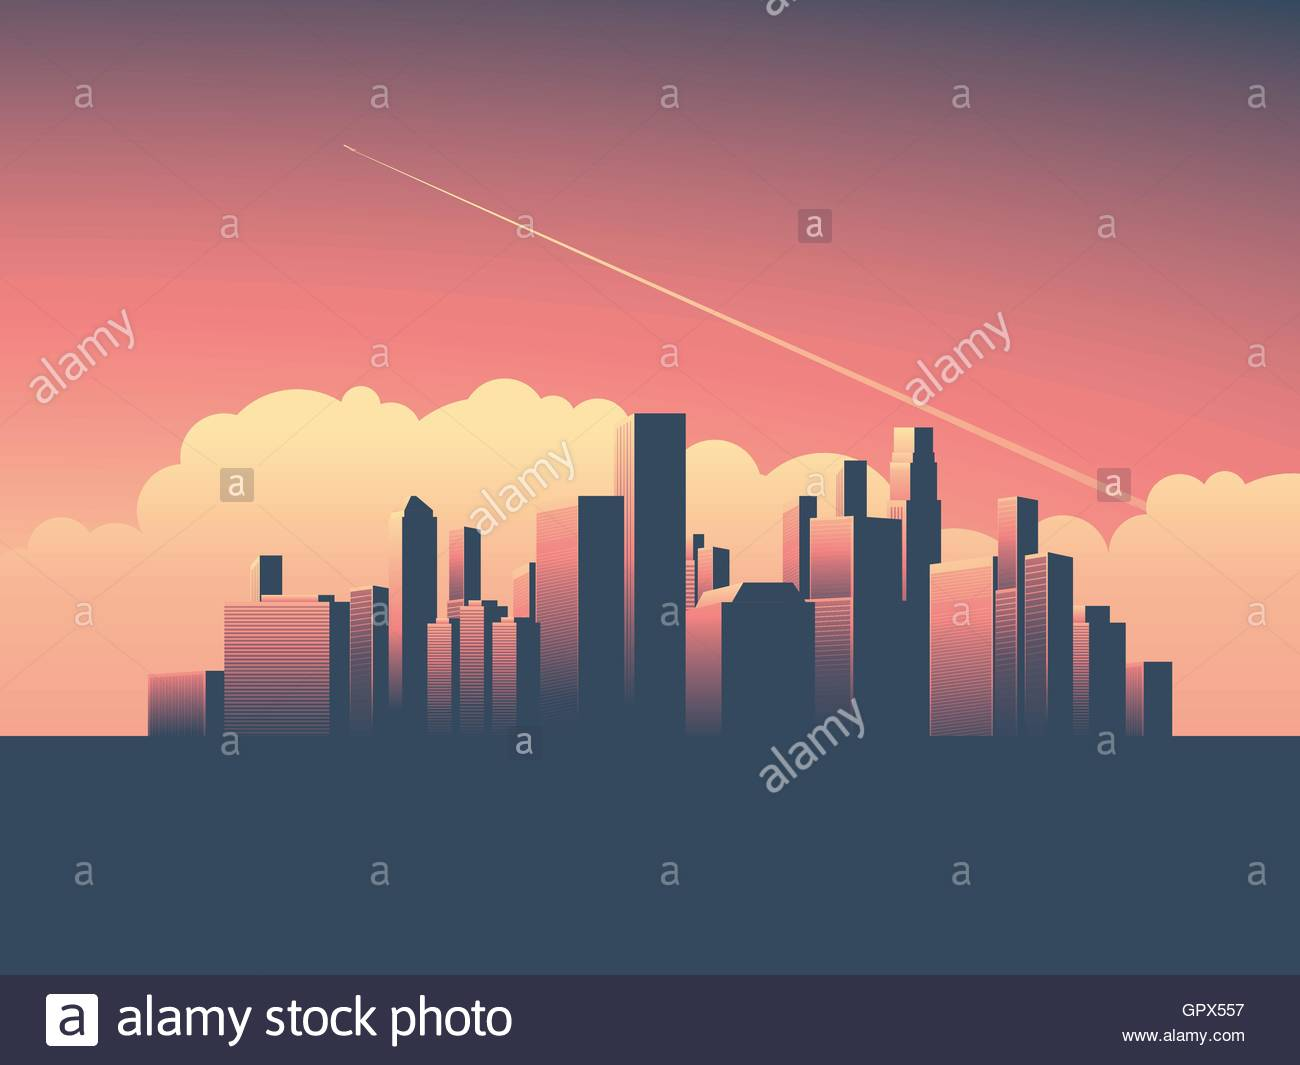 Modern urban cityscape vector illustration. Symbol of power, economy, financial institutions, money and banks. - Stock Vector